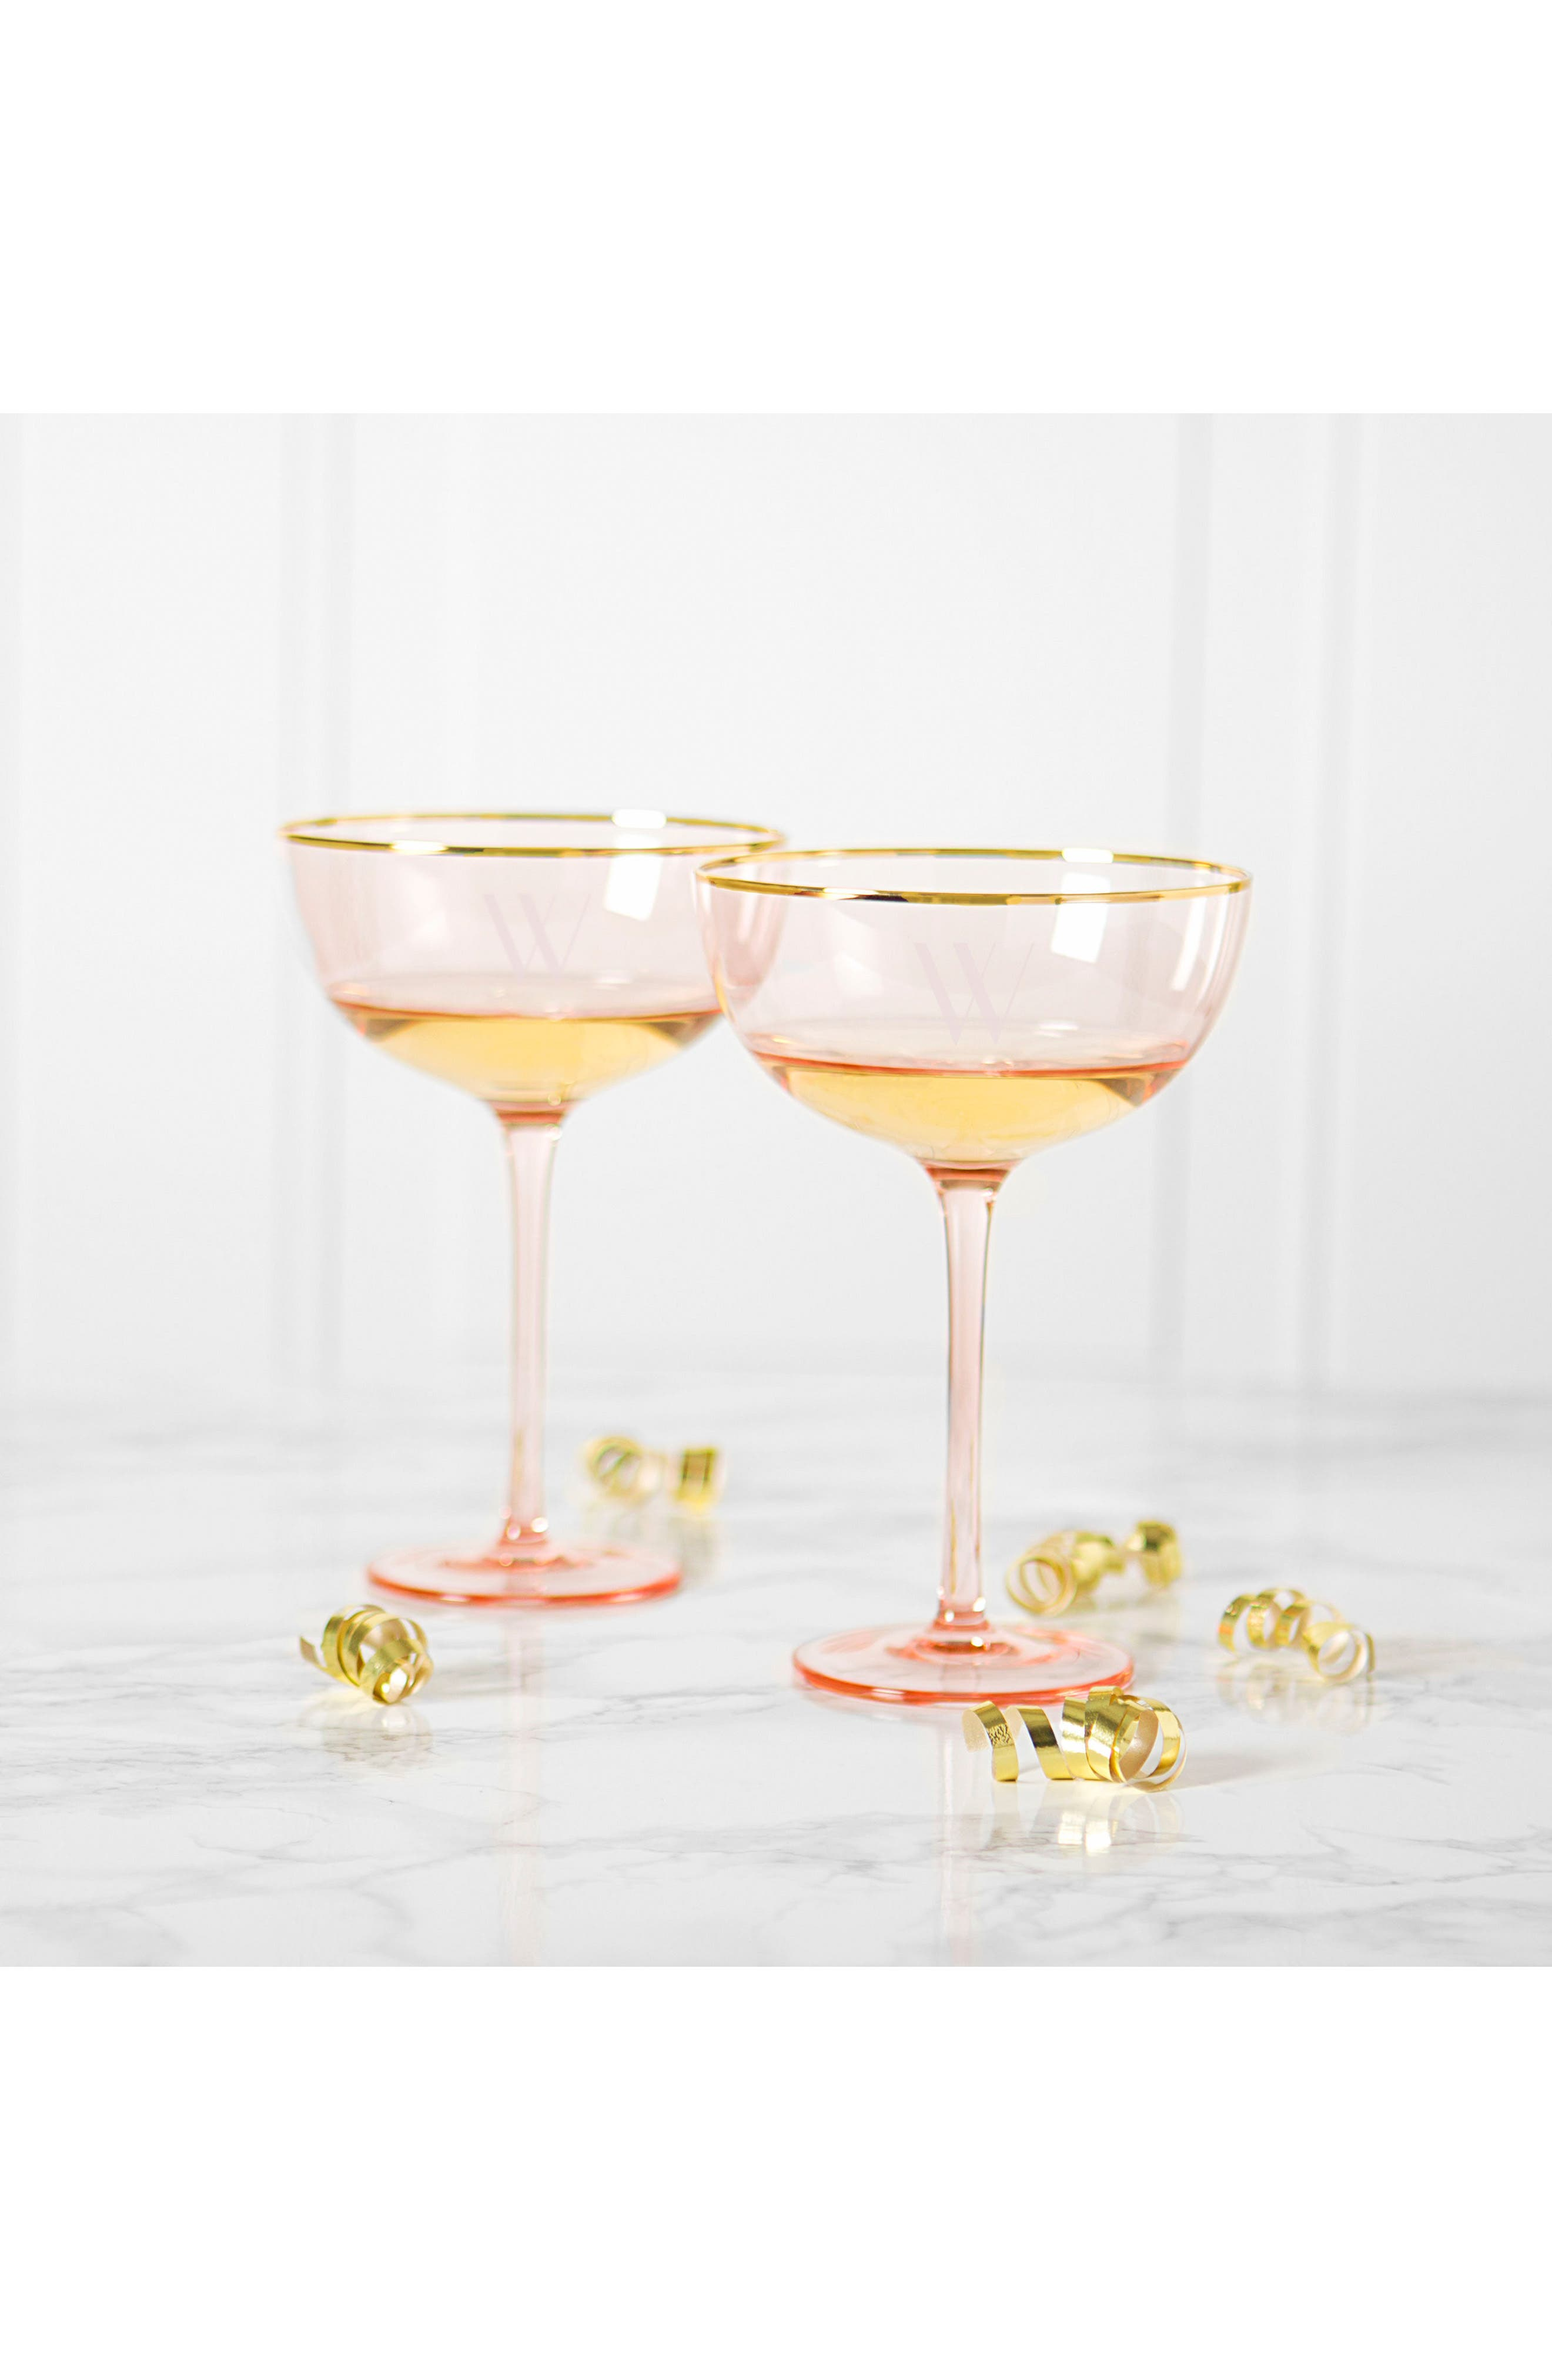 Monogram Set of 2 Champagne Coupes,                             Alternate thumbnail 11, color,                             Blush